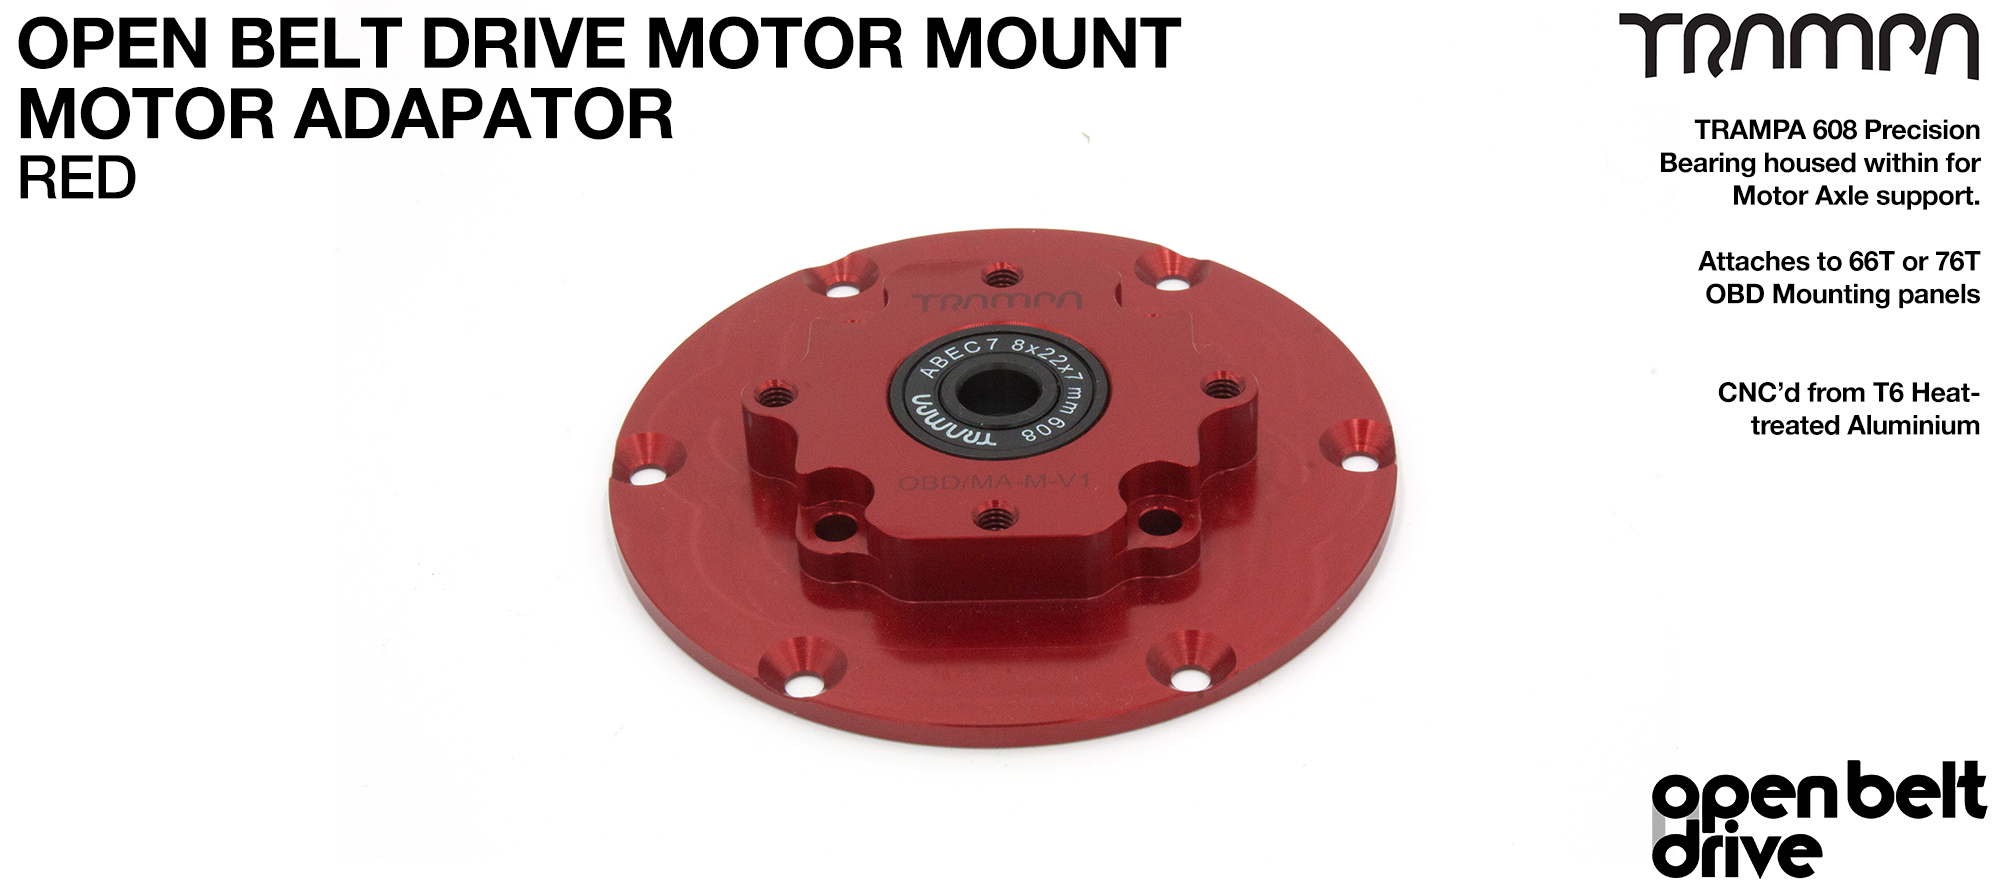 RED OBD Motor Adaptors with Housed Bearing